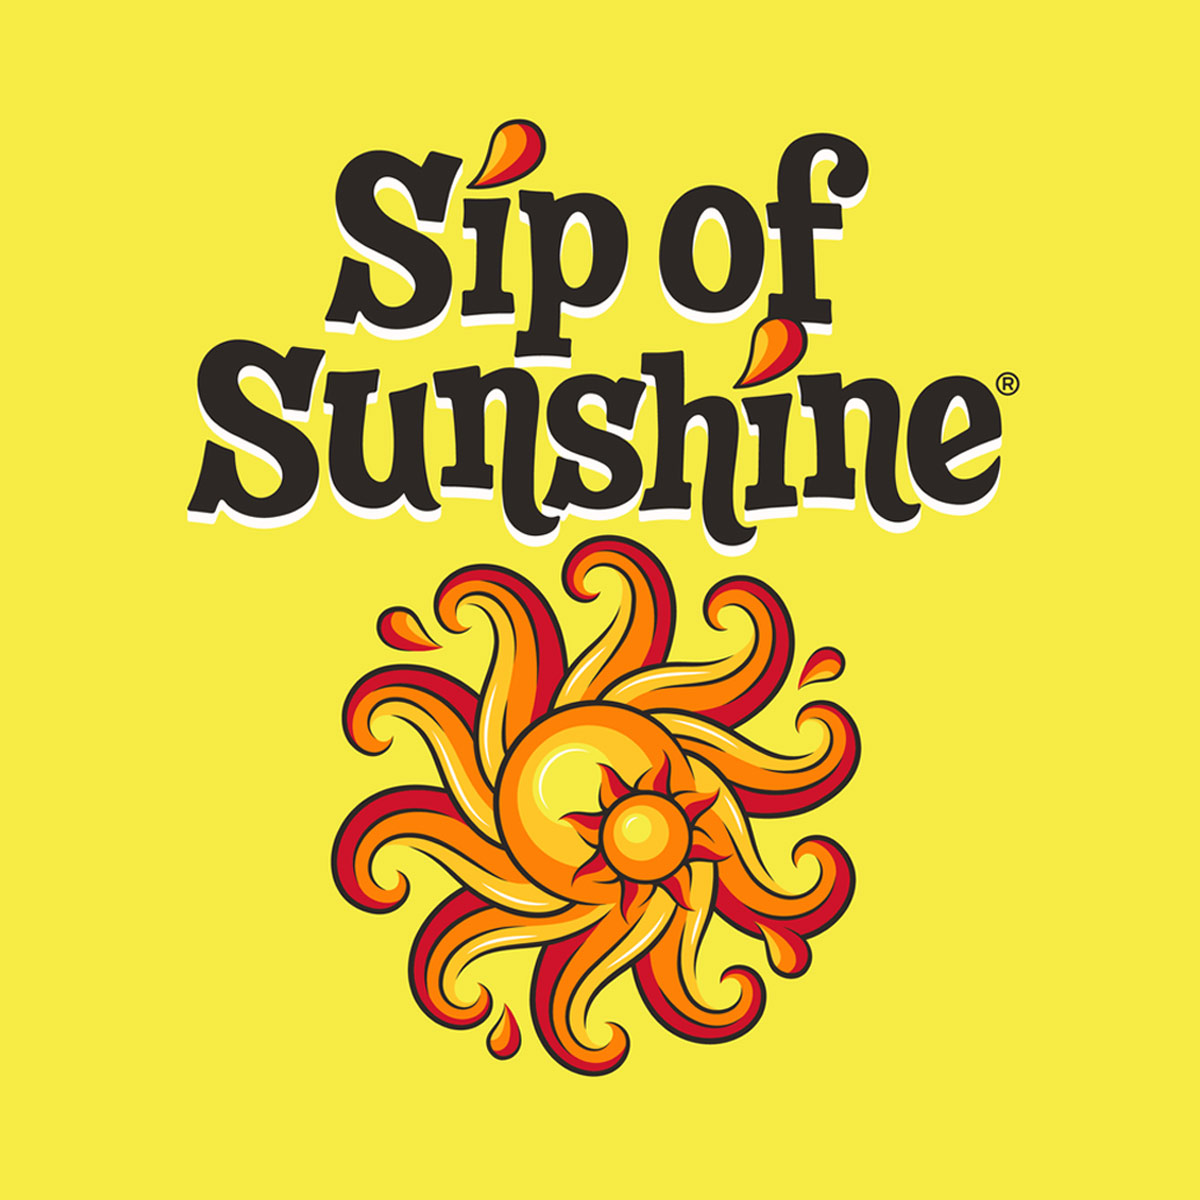 Sip of Sunshine - IPA